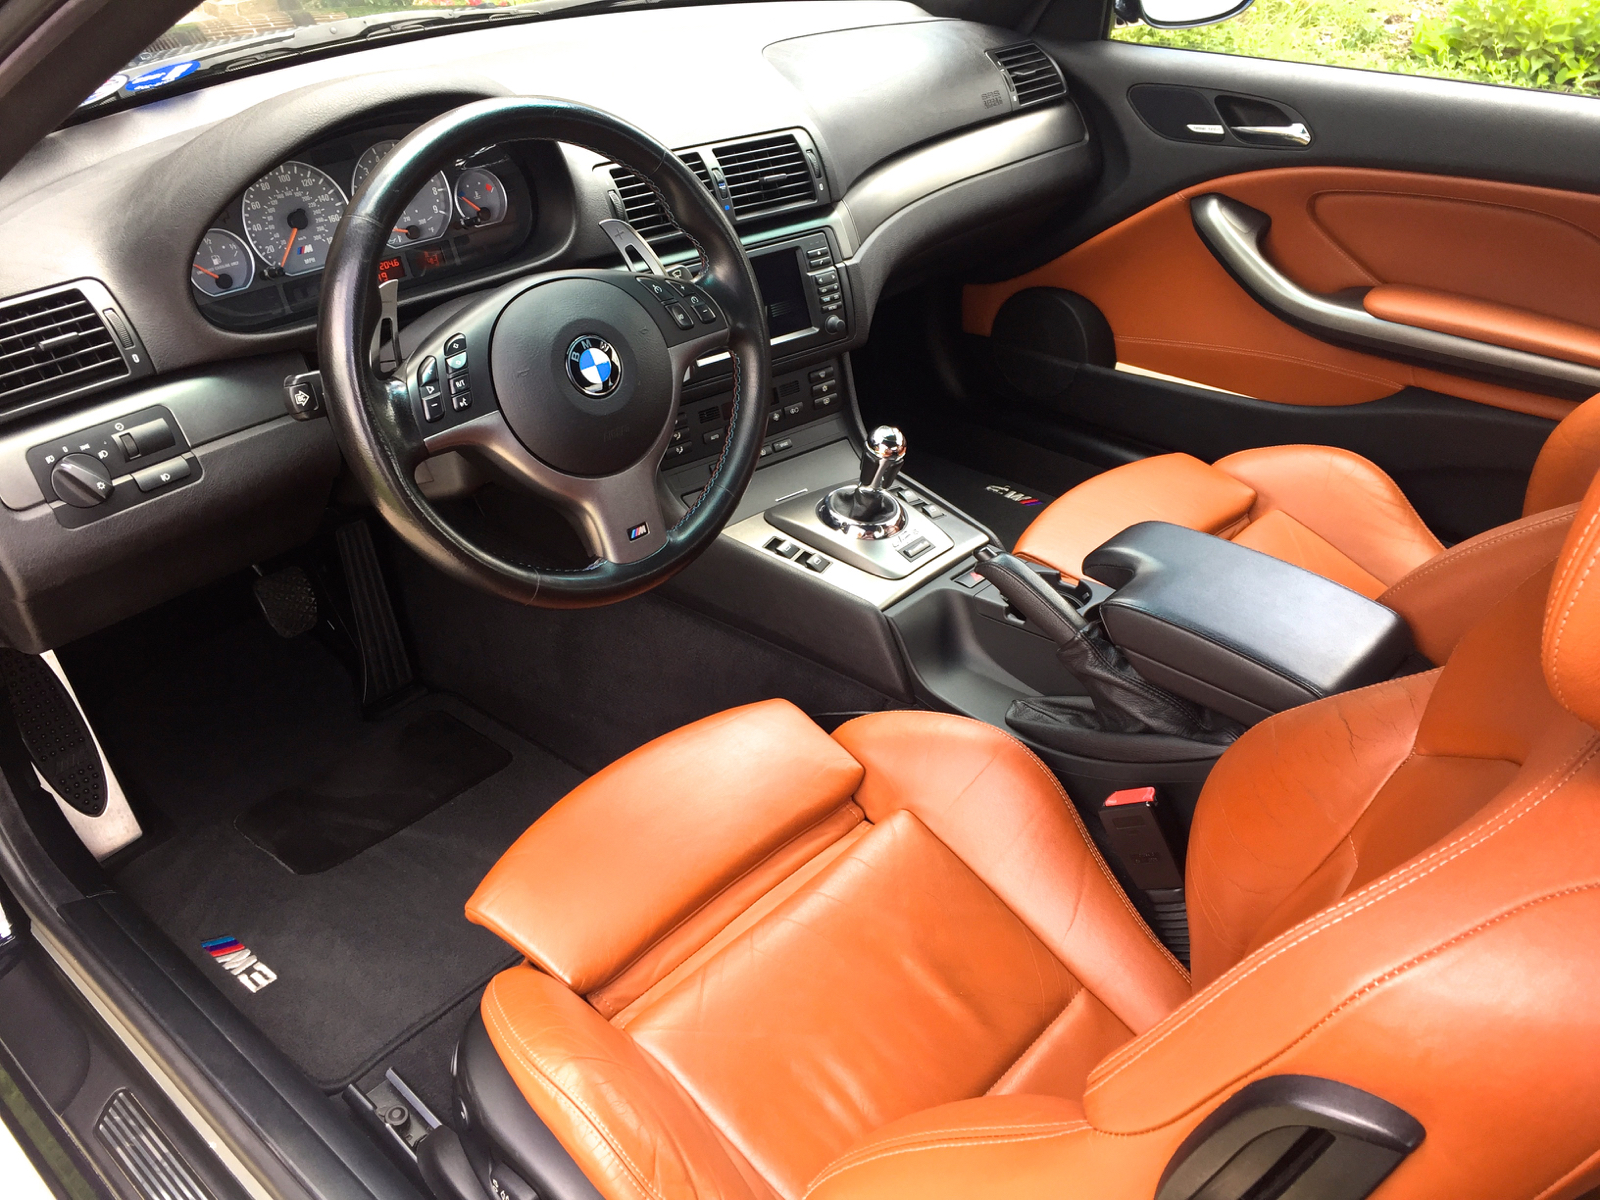 For sale ultimate driving machine 2003 e46 m3 coupe carbon cinnamon bmw m5 forum and m6 forums for White bmw with red interior for sale